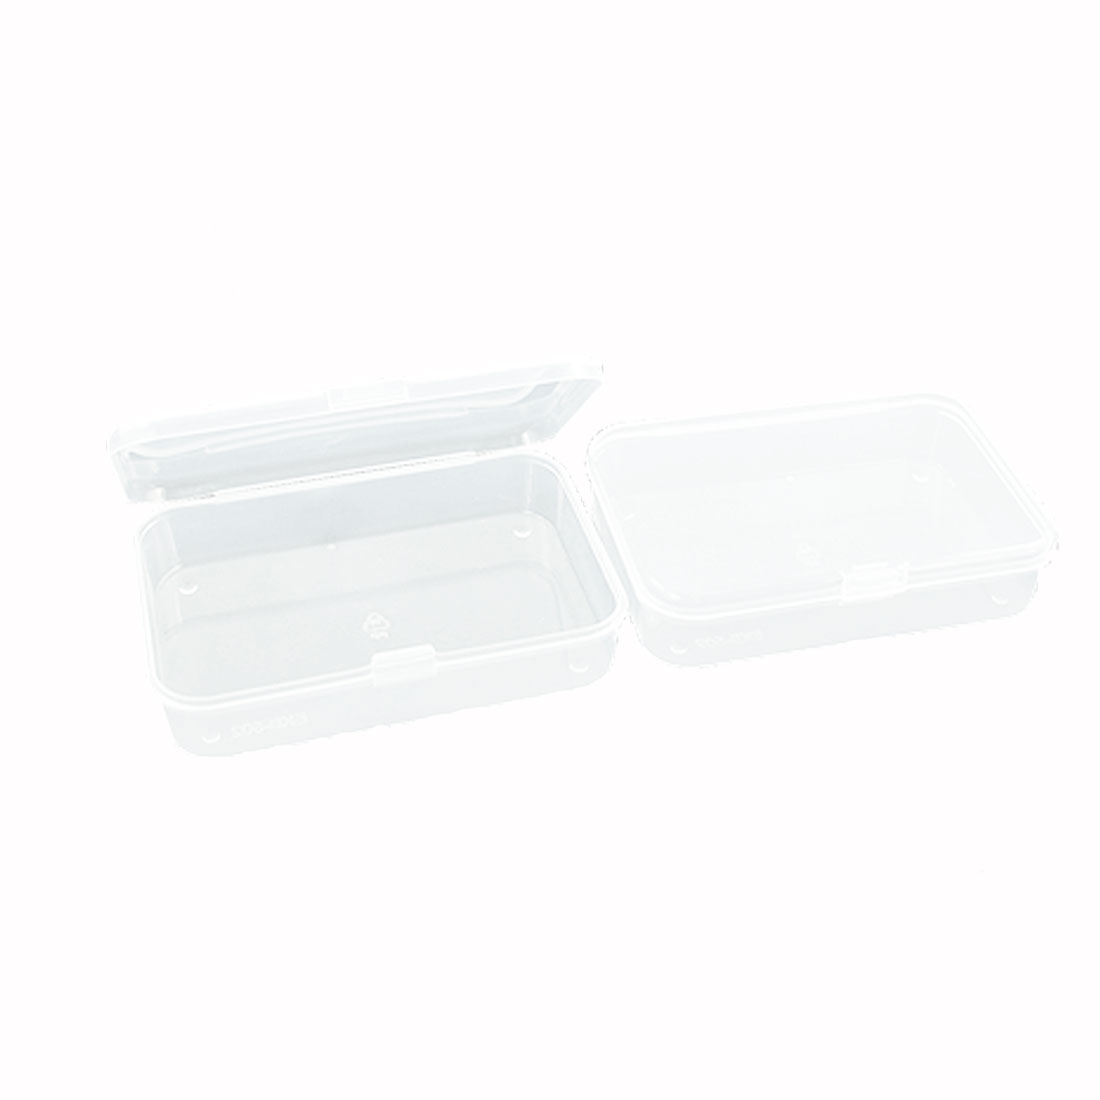 2 Pcs Household Clear Plastic Storage Case Container for Jewelry